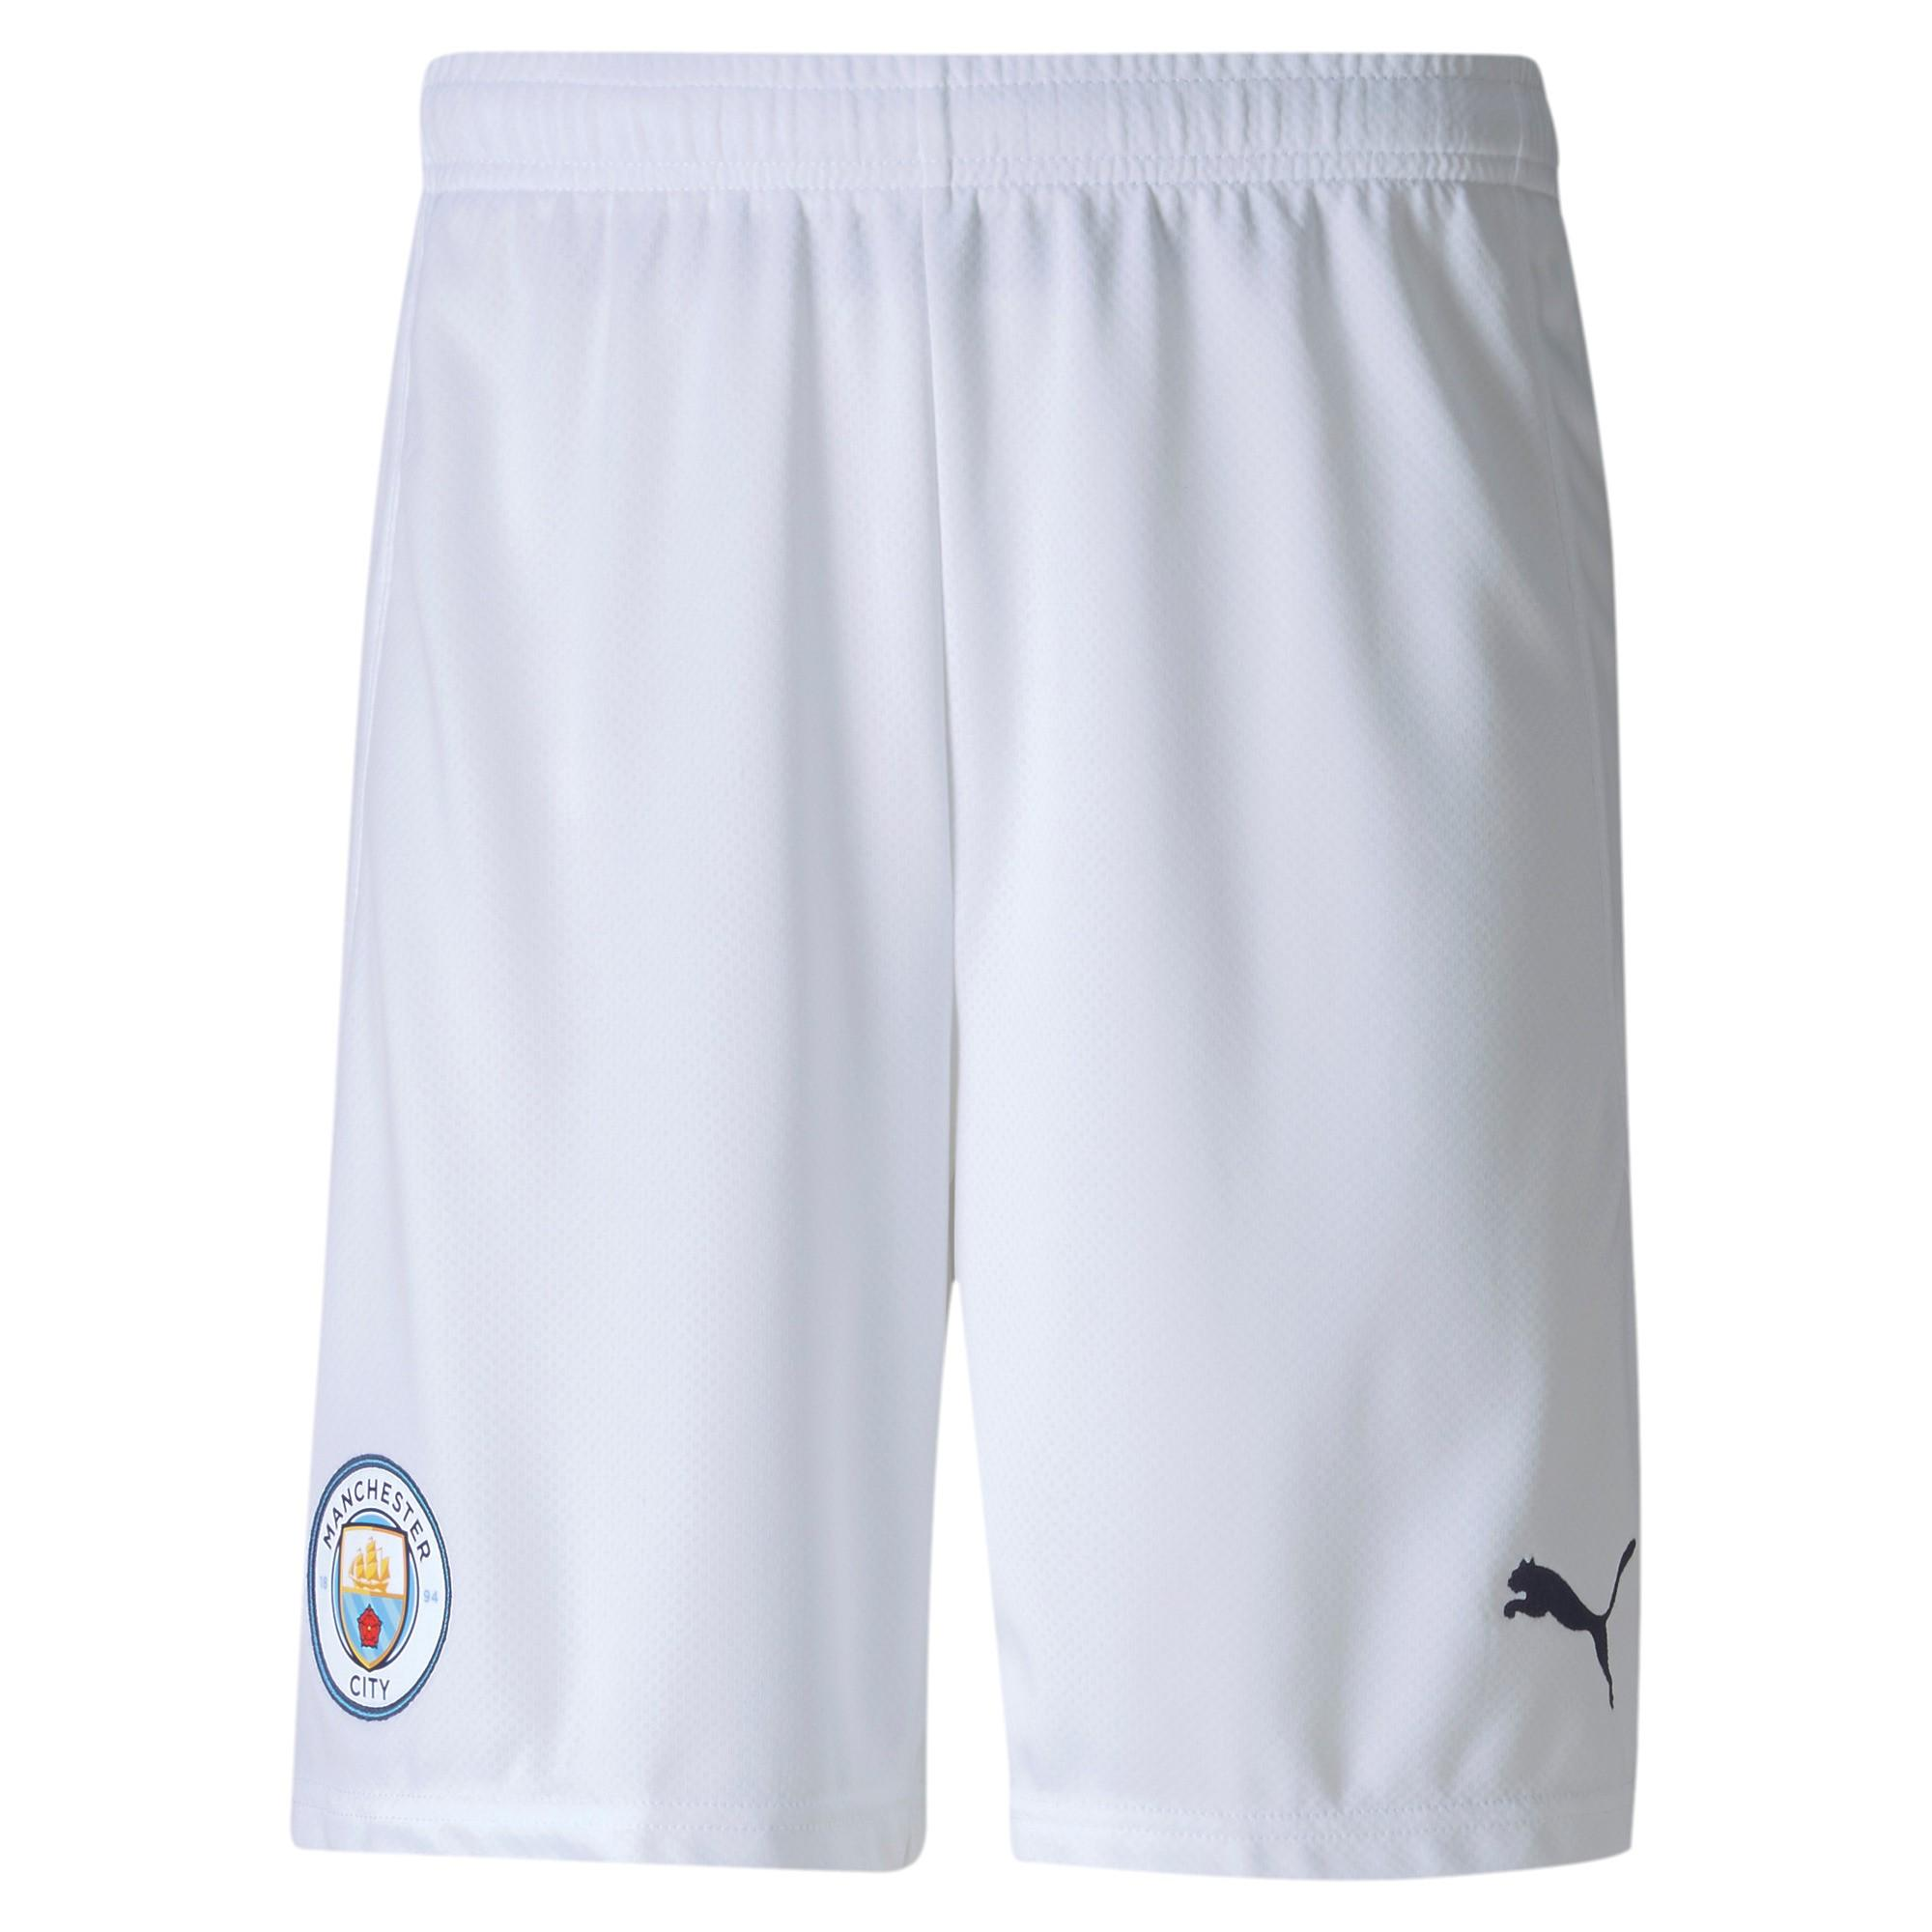 Puma Pantaloncini Gara Home & Away Manchester City   20/21